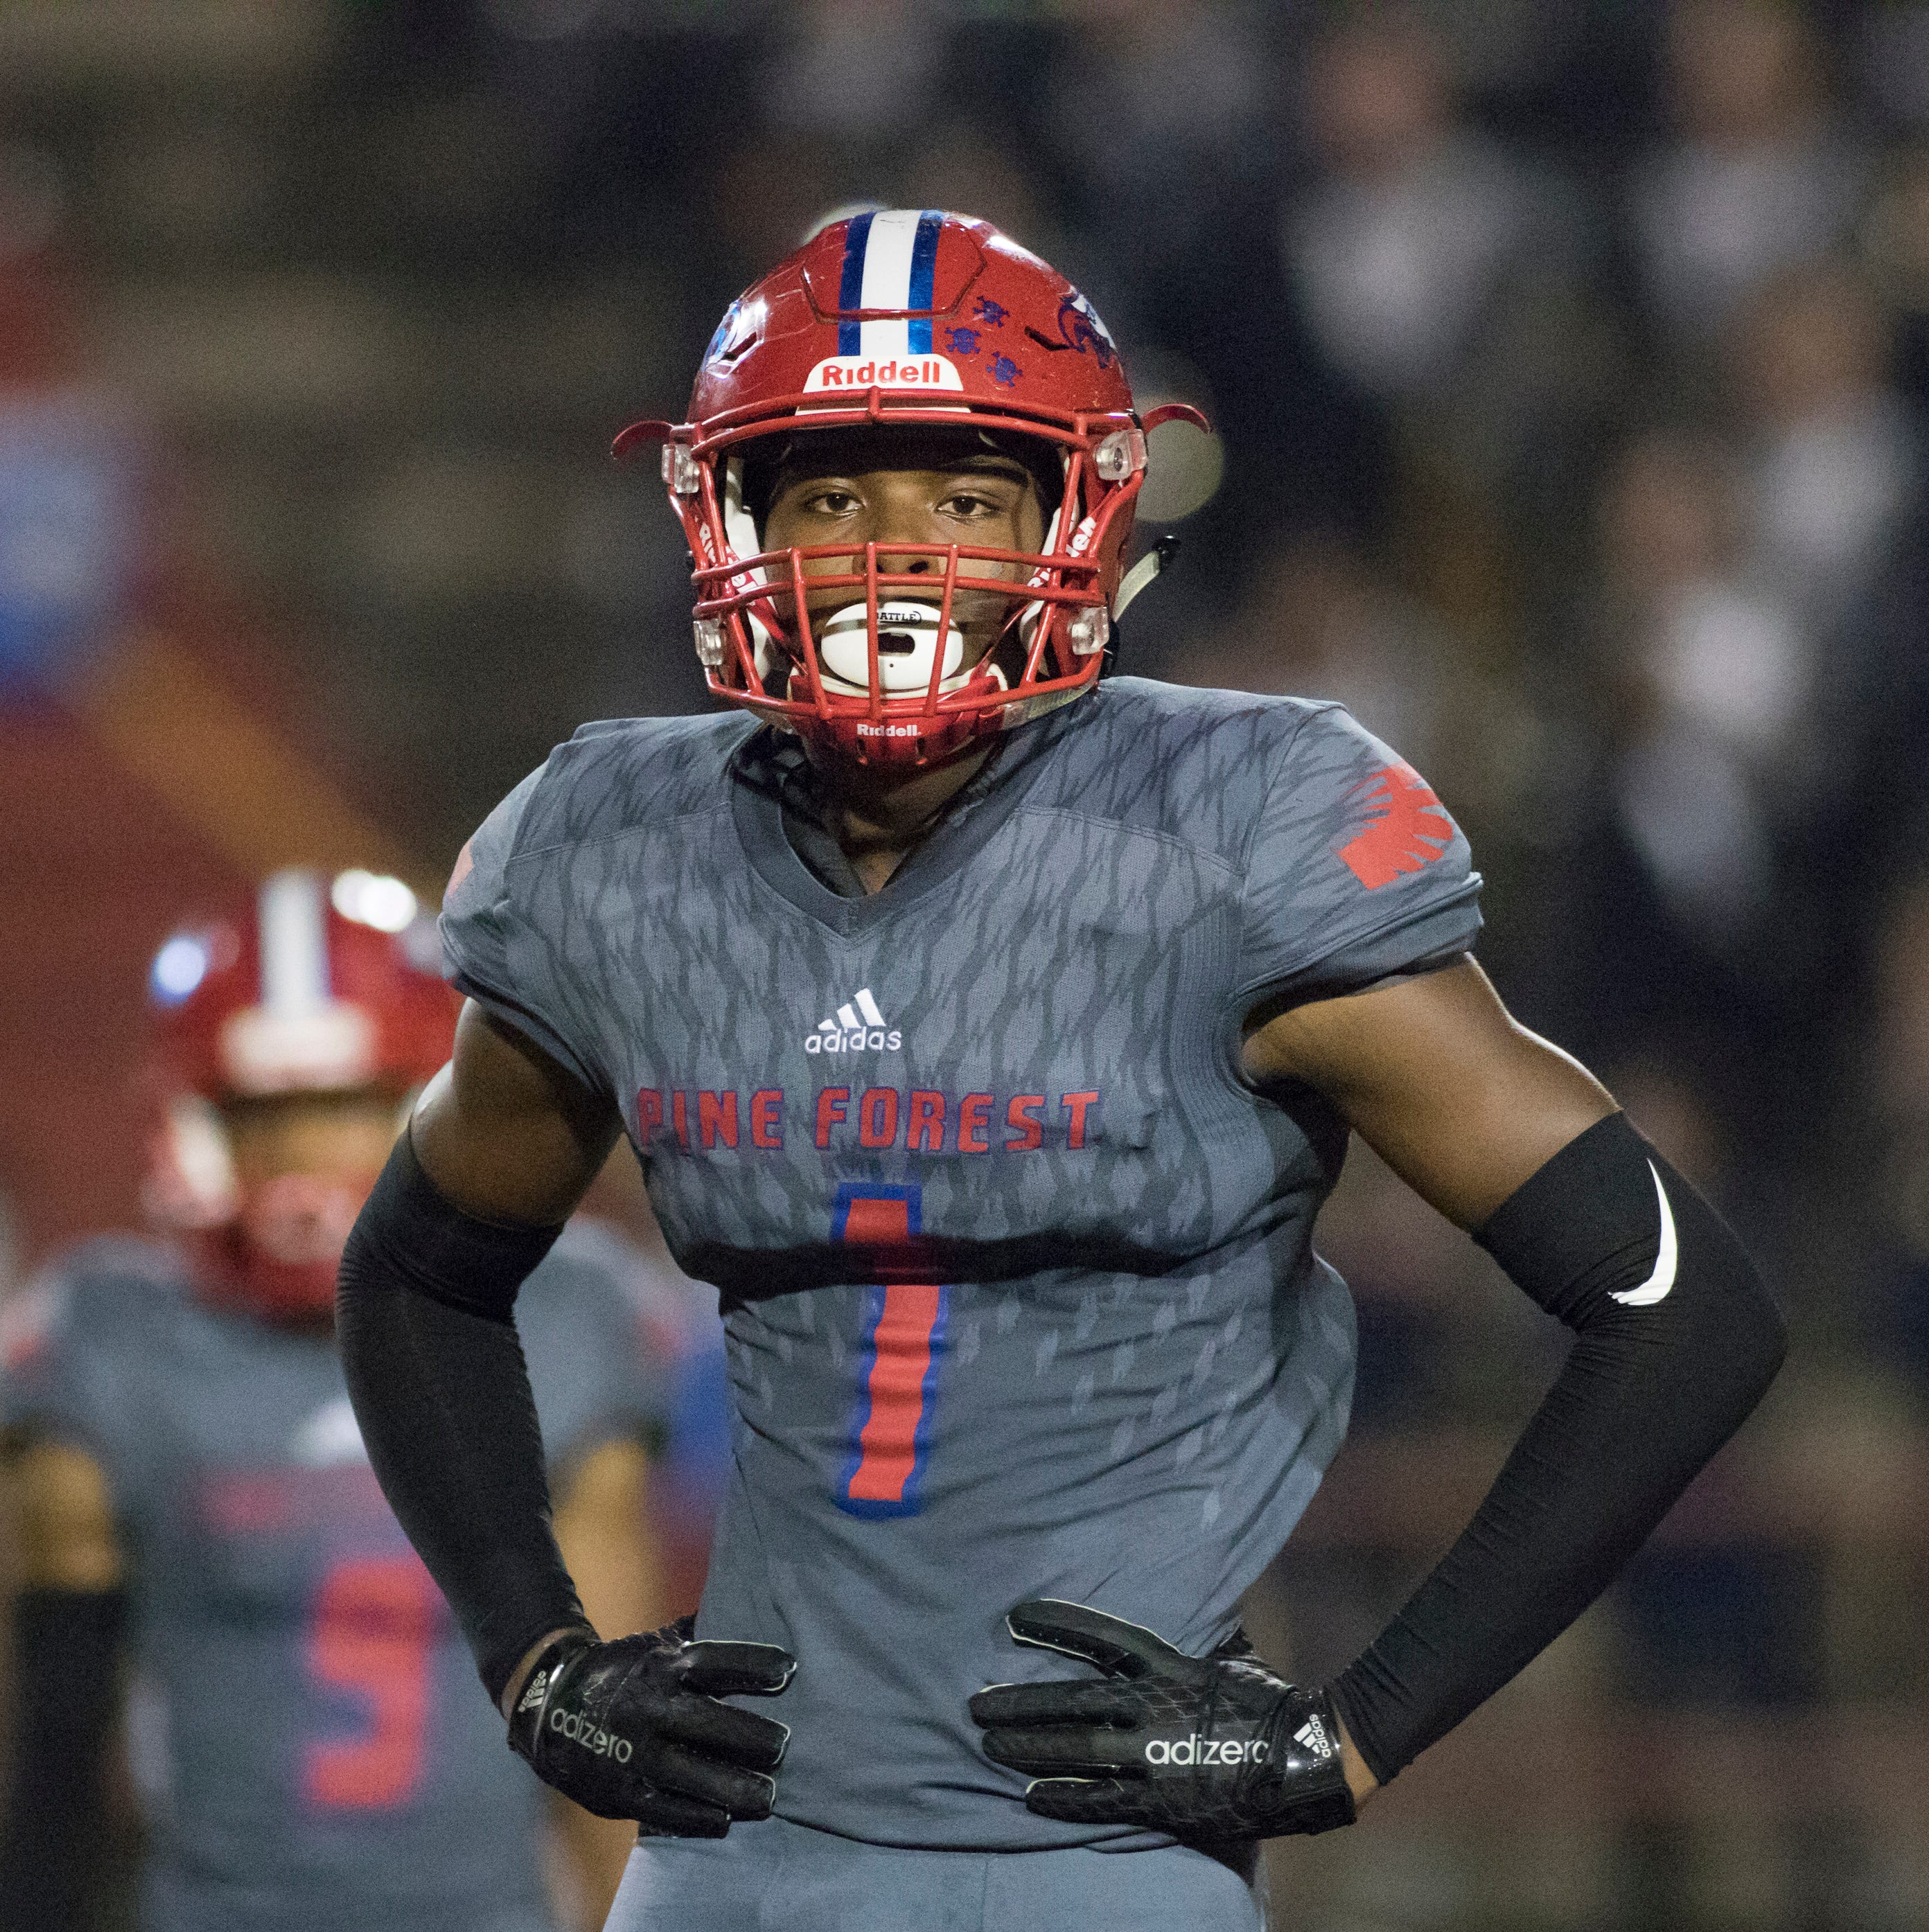 Emerson still committed to MSU, but still has official visits lined up for Top 4